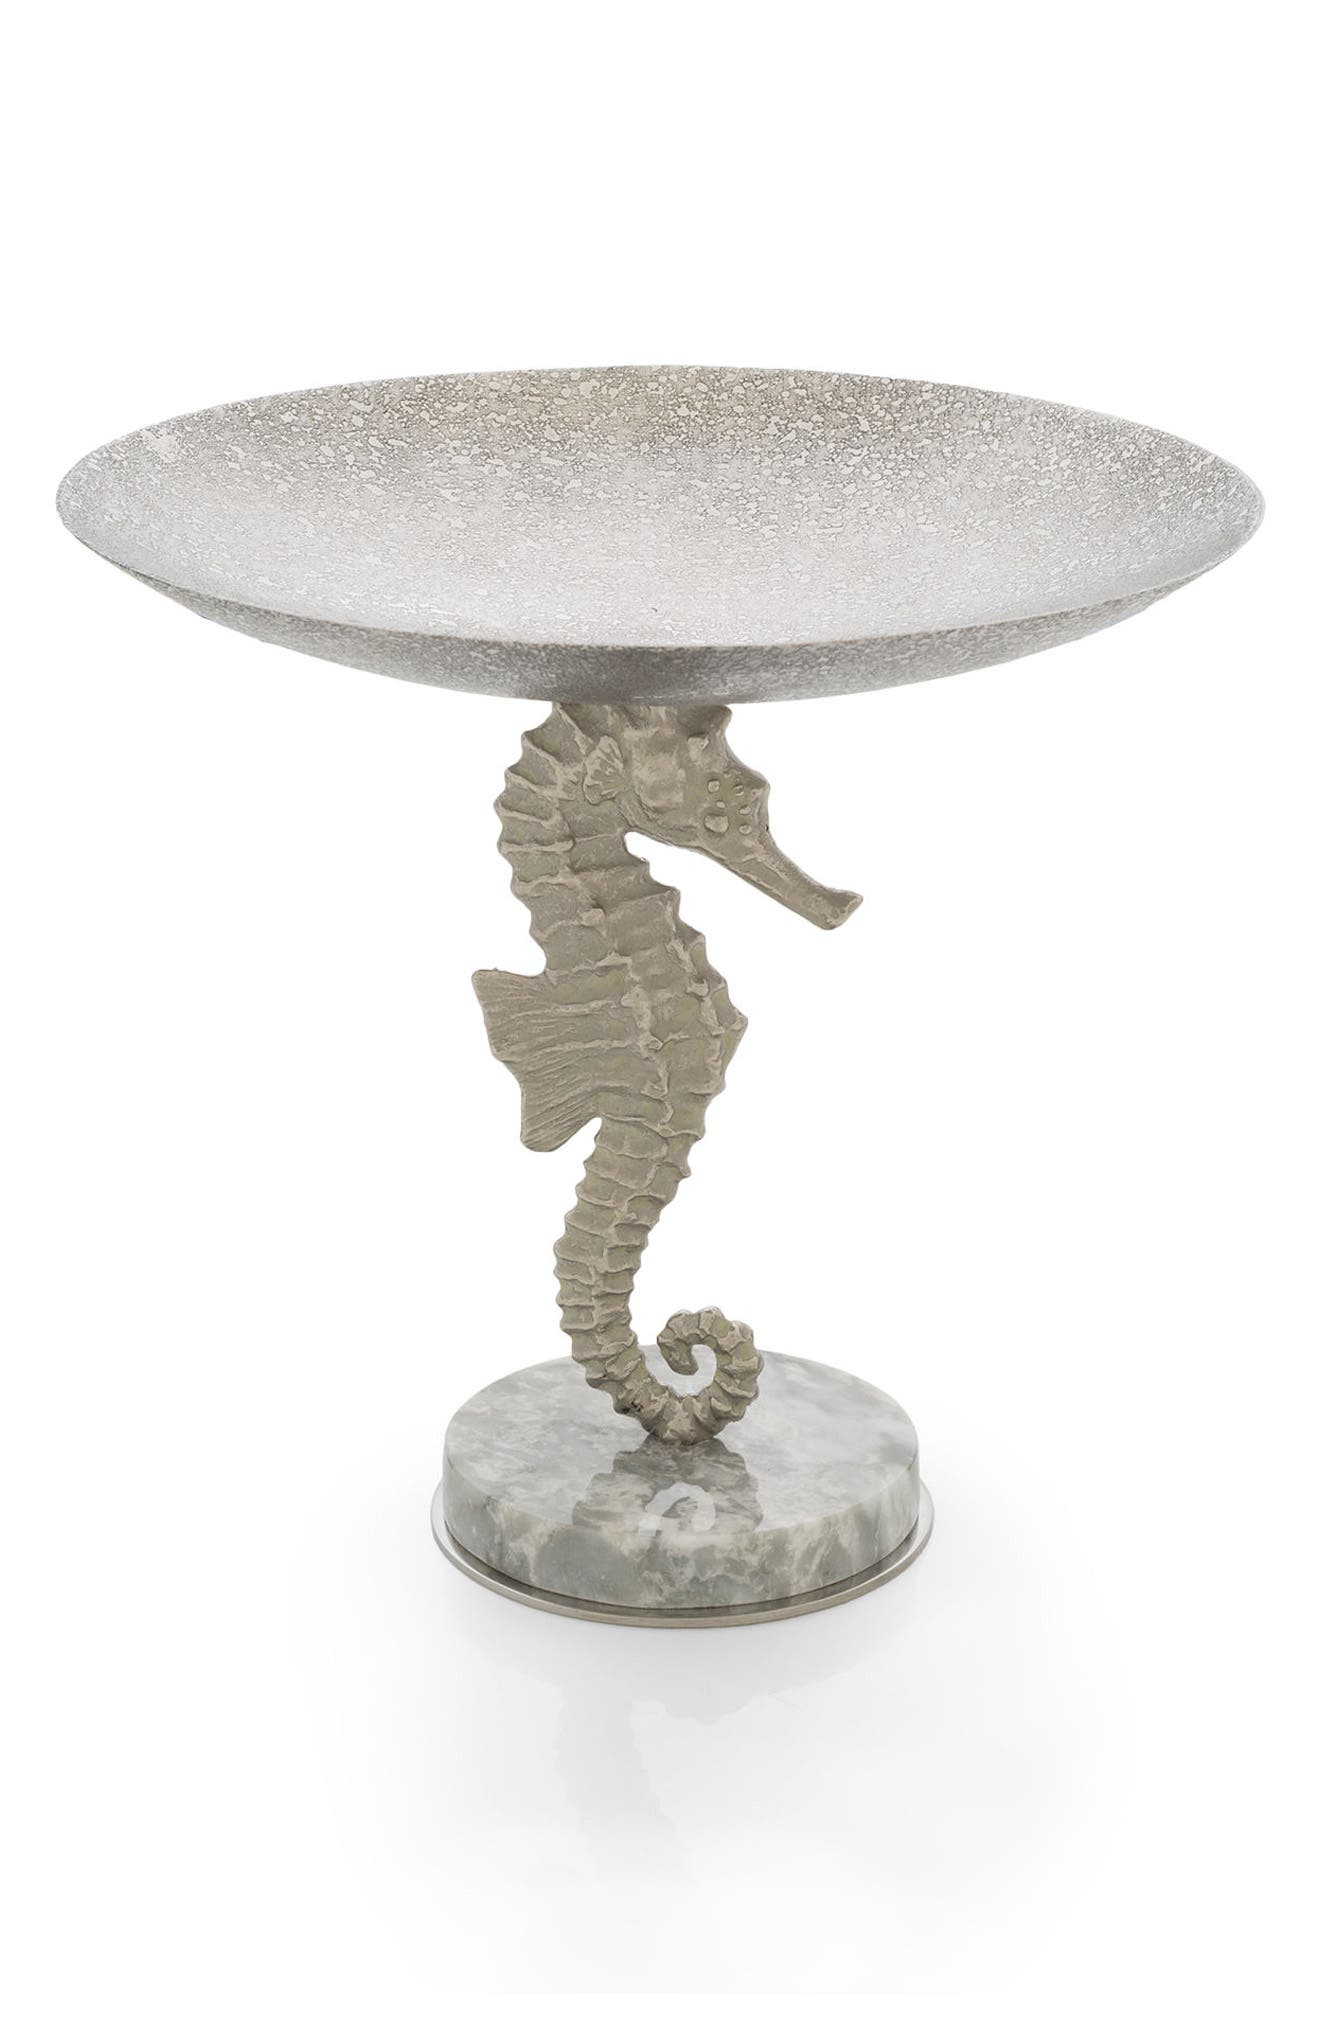 Ocean Reef Candy Dish,                             Main thumbnail 1, color,                             Silver